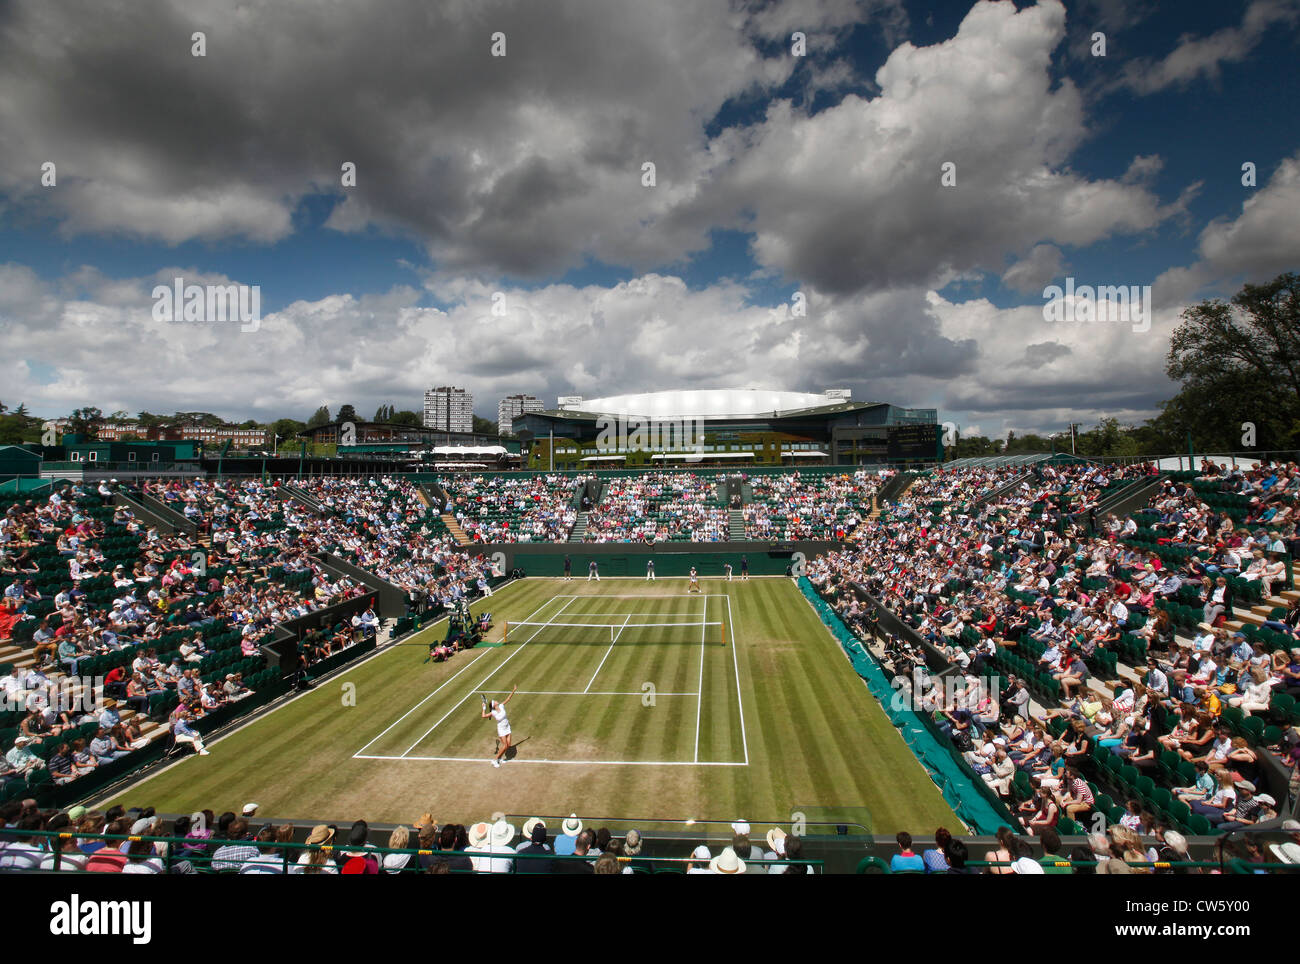 View from above of Show Court 2 at Wimbledon - Stock Image